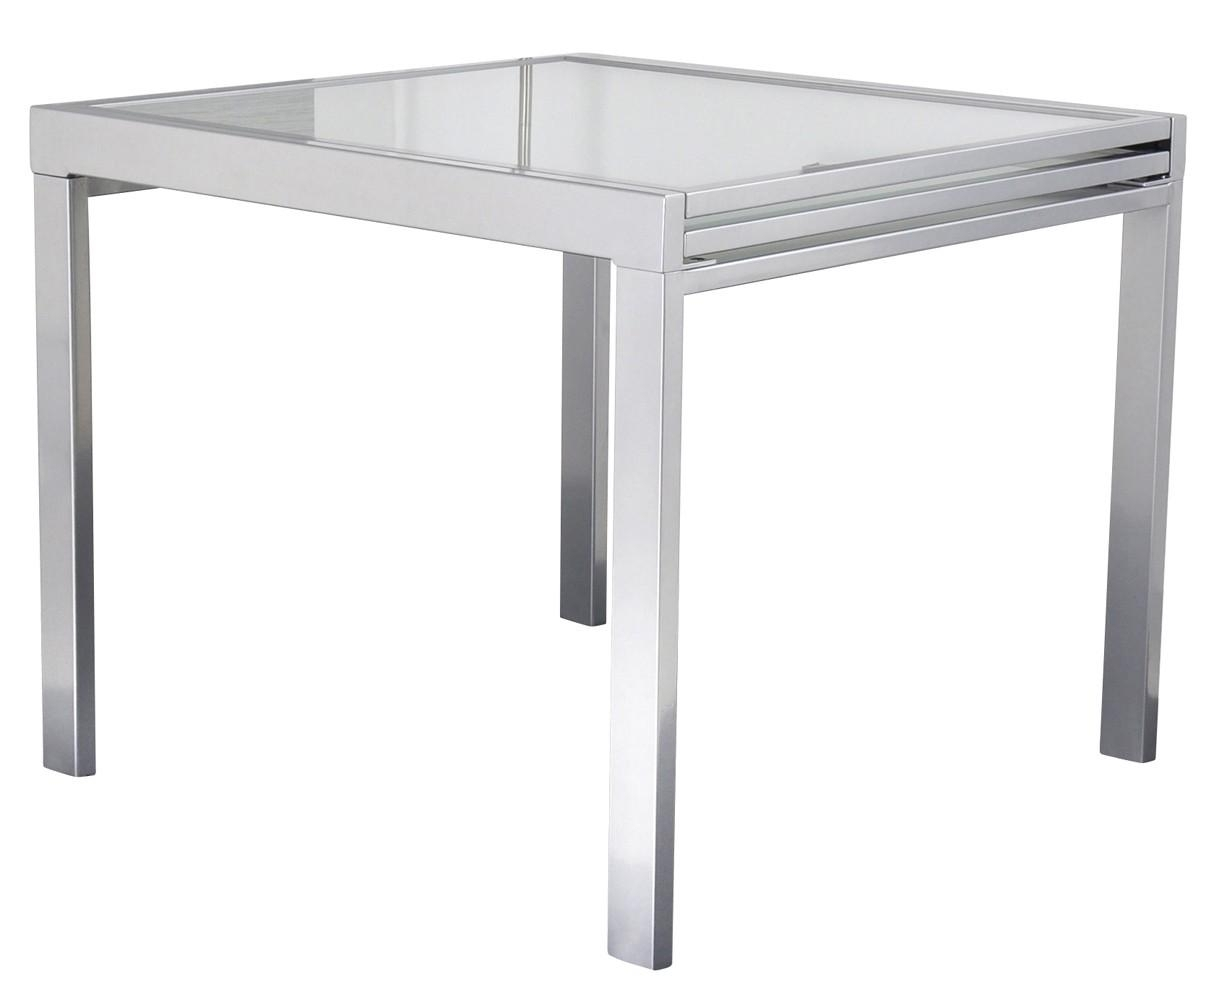 Les tendances table carr e extensible grise for Table salle a manger carree extensible